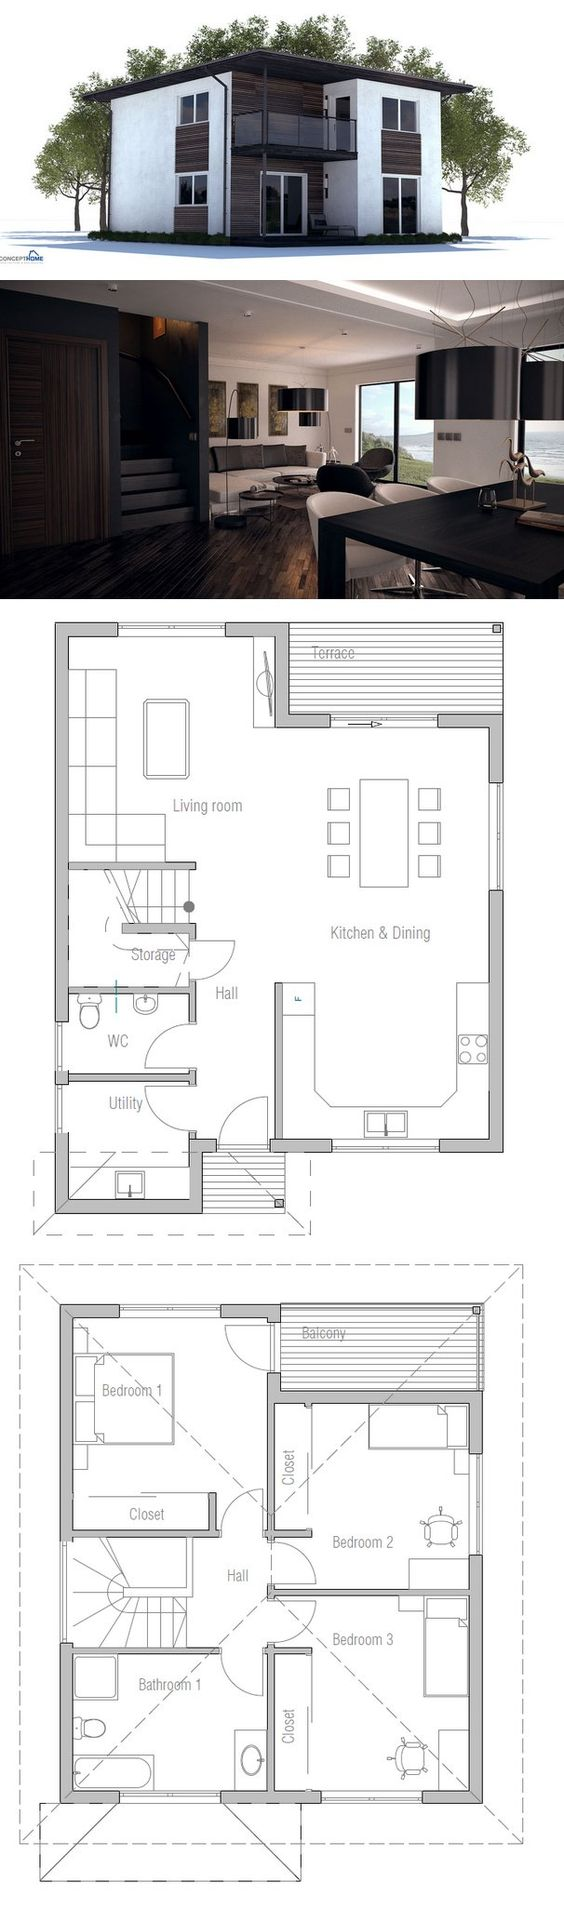 House Plan Affordable Building Budget Floor Plan From